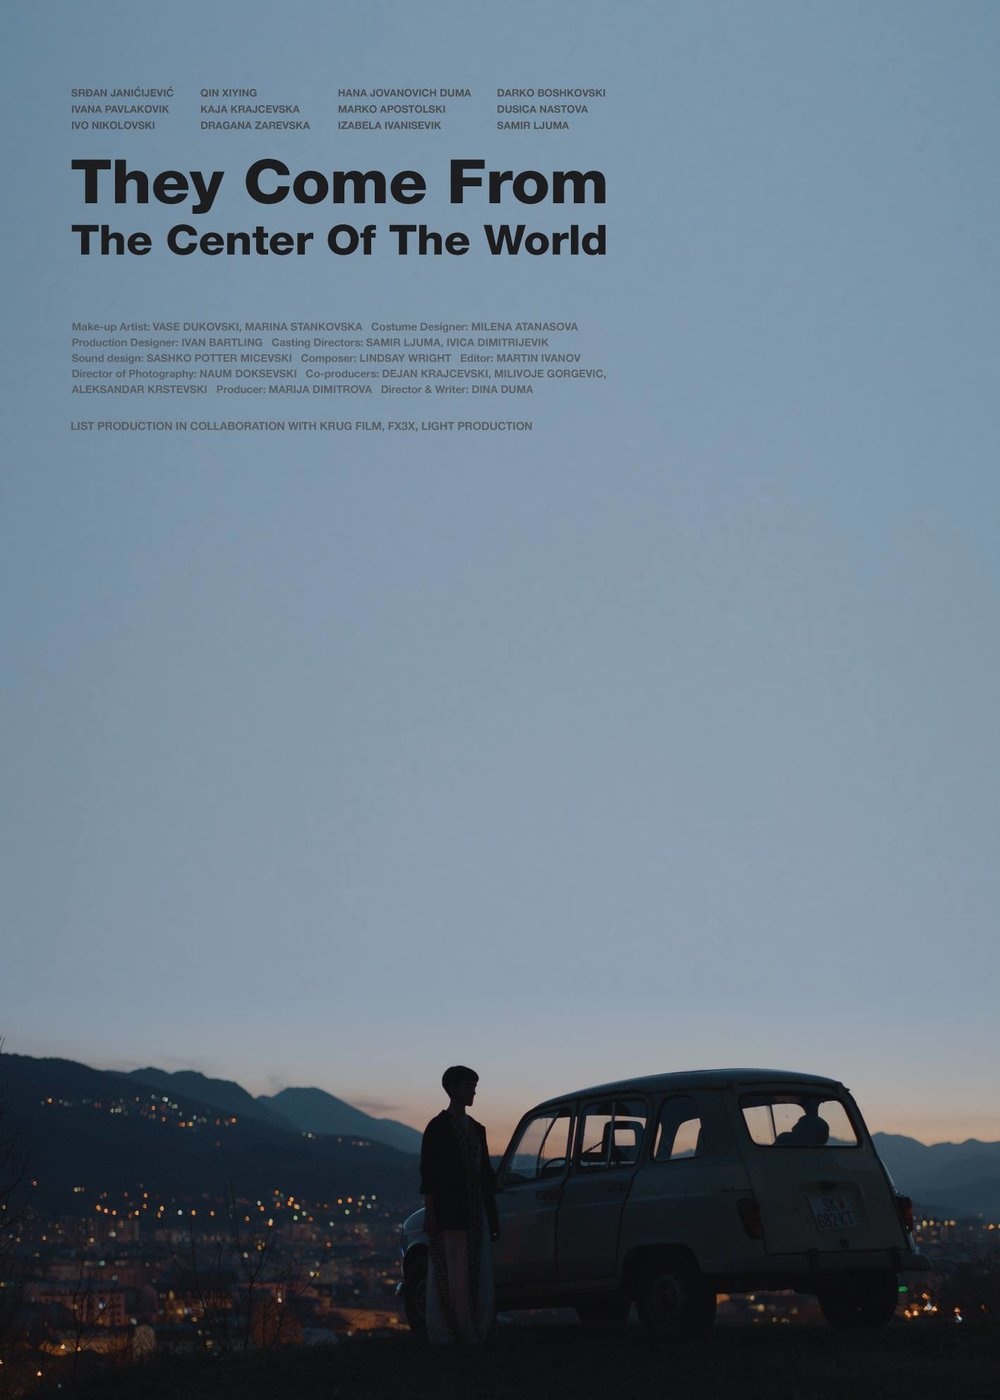 They Come From the Center of the World official poster